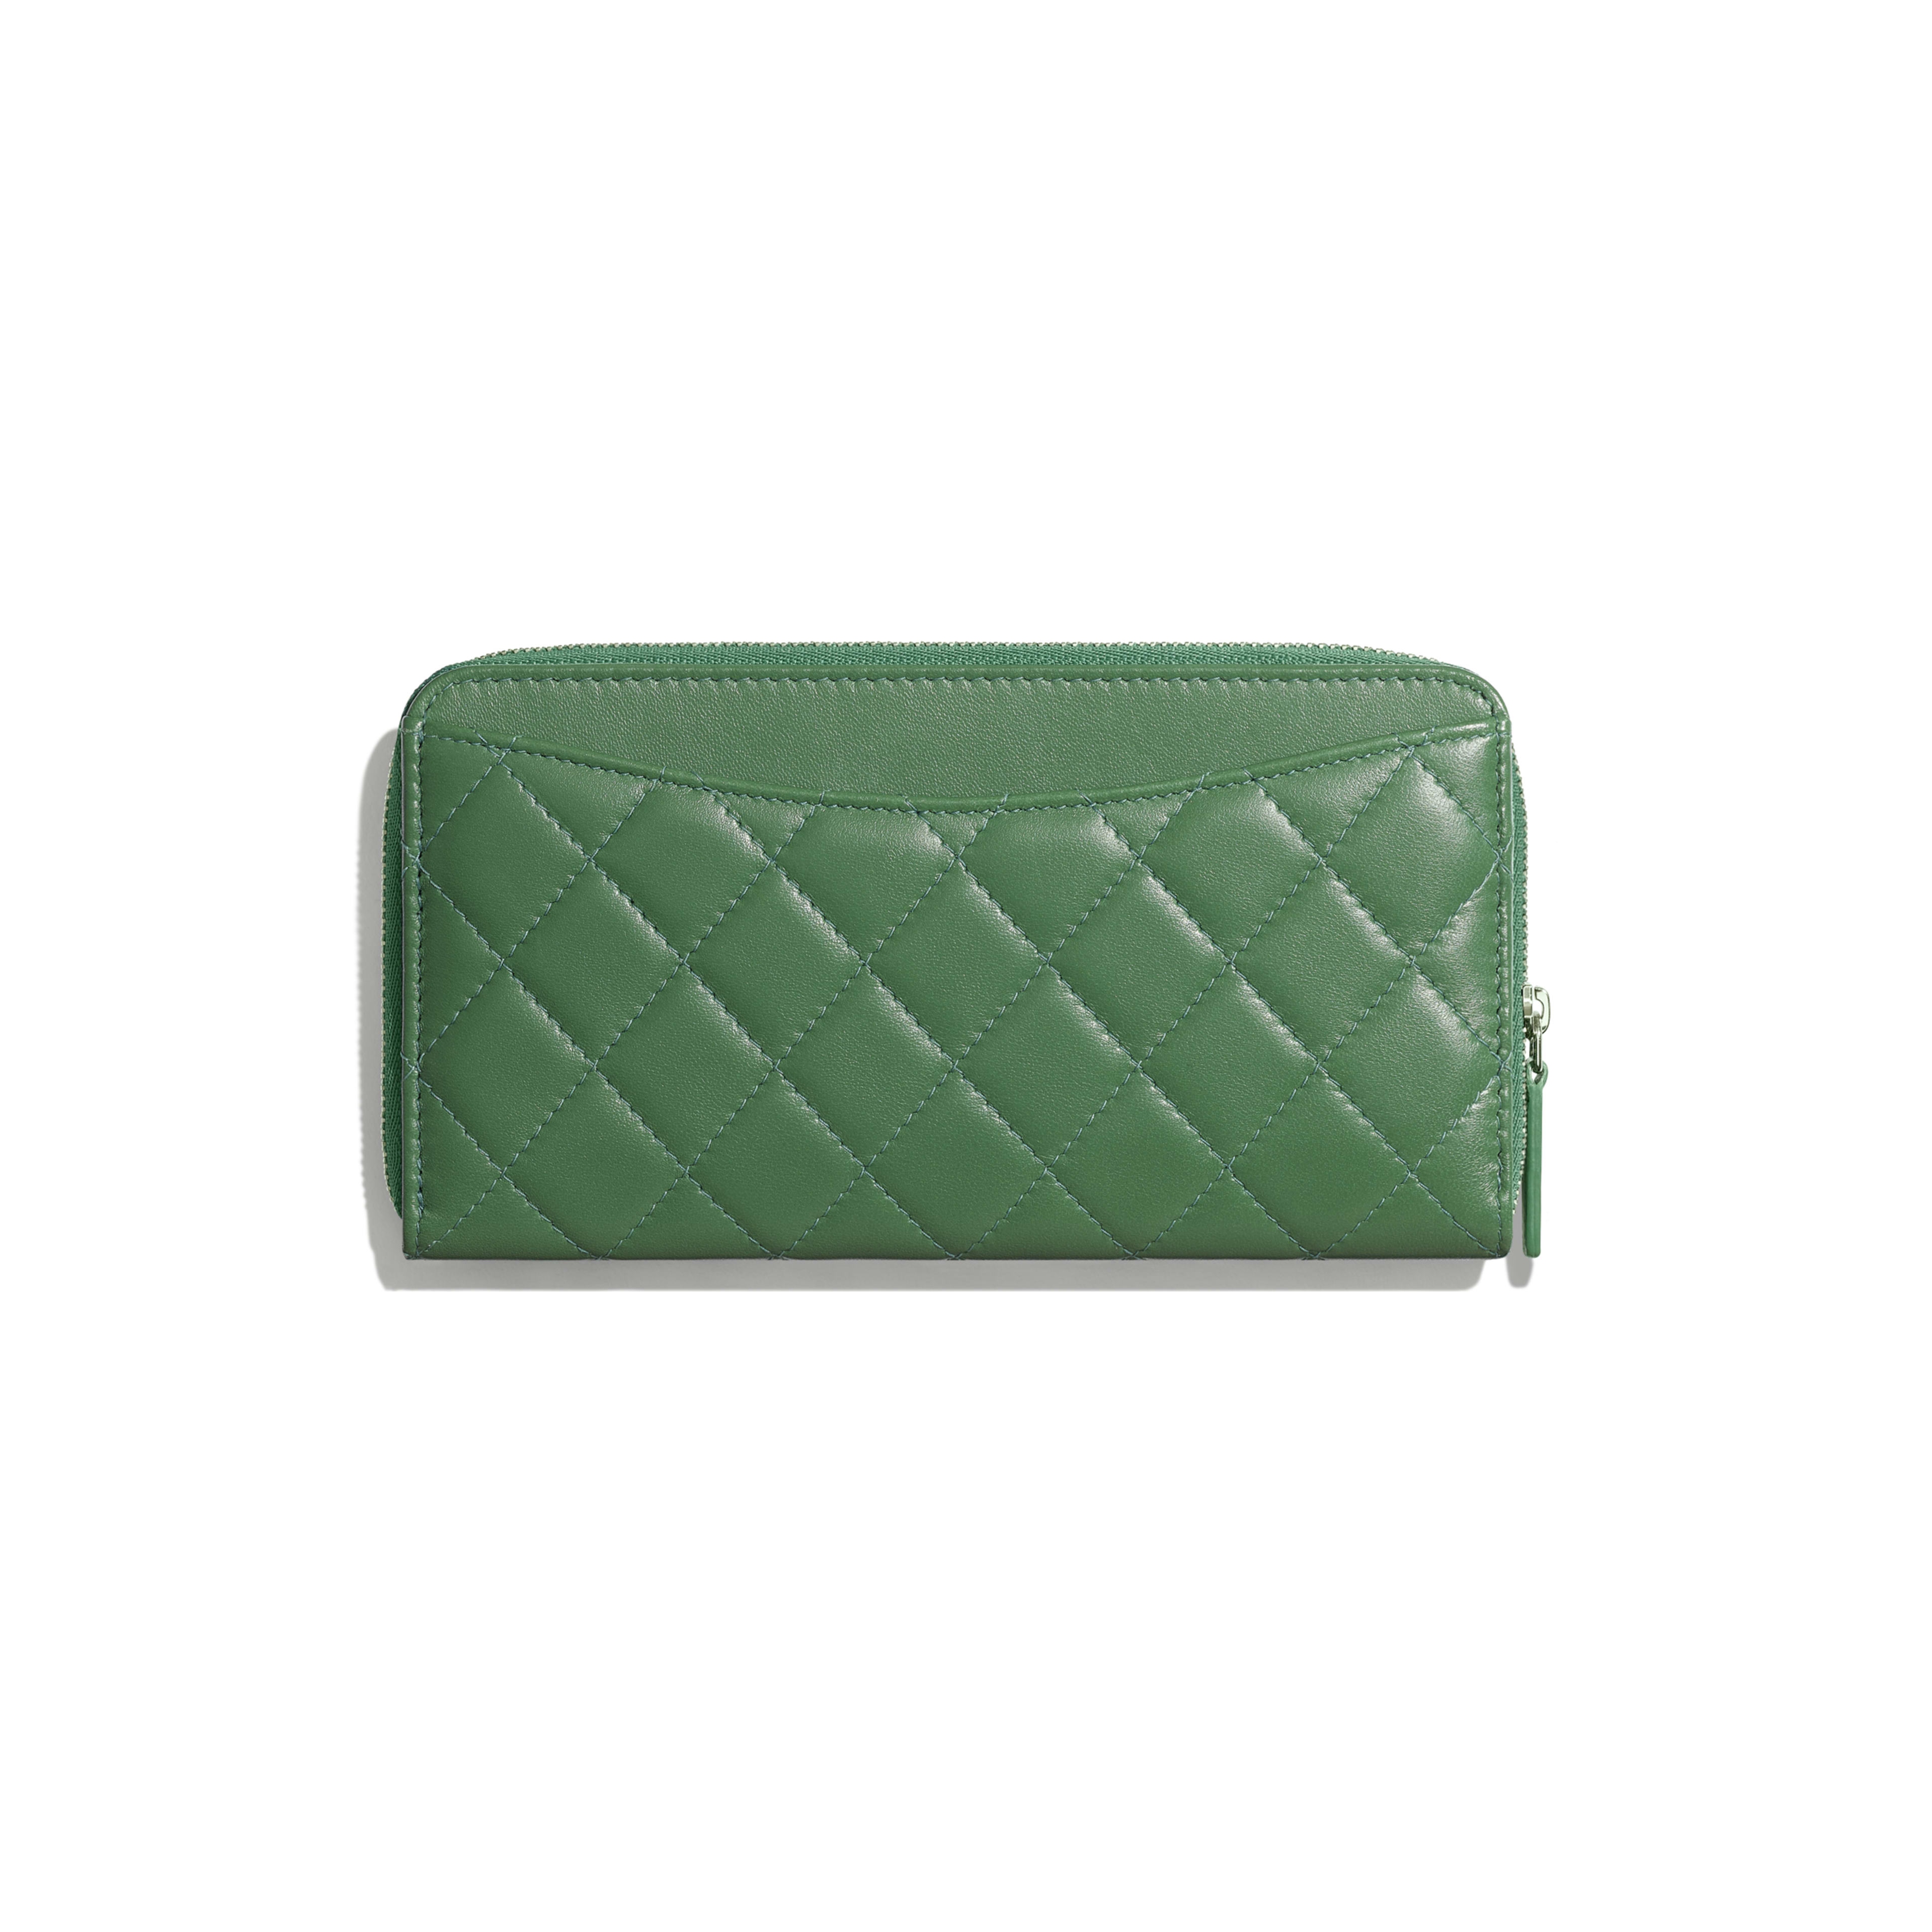 Classic Long Zipped Wallet - Green - Lambskin - Alternative view - see full sized version